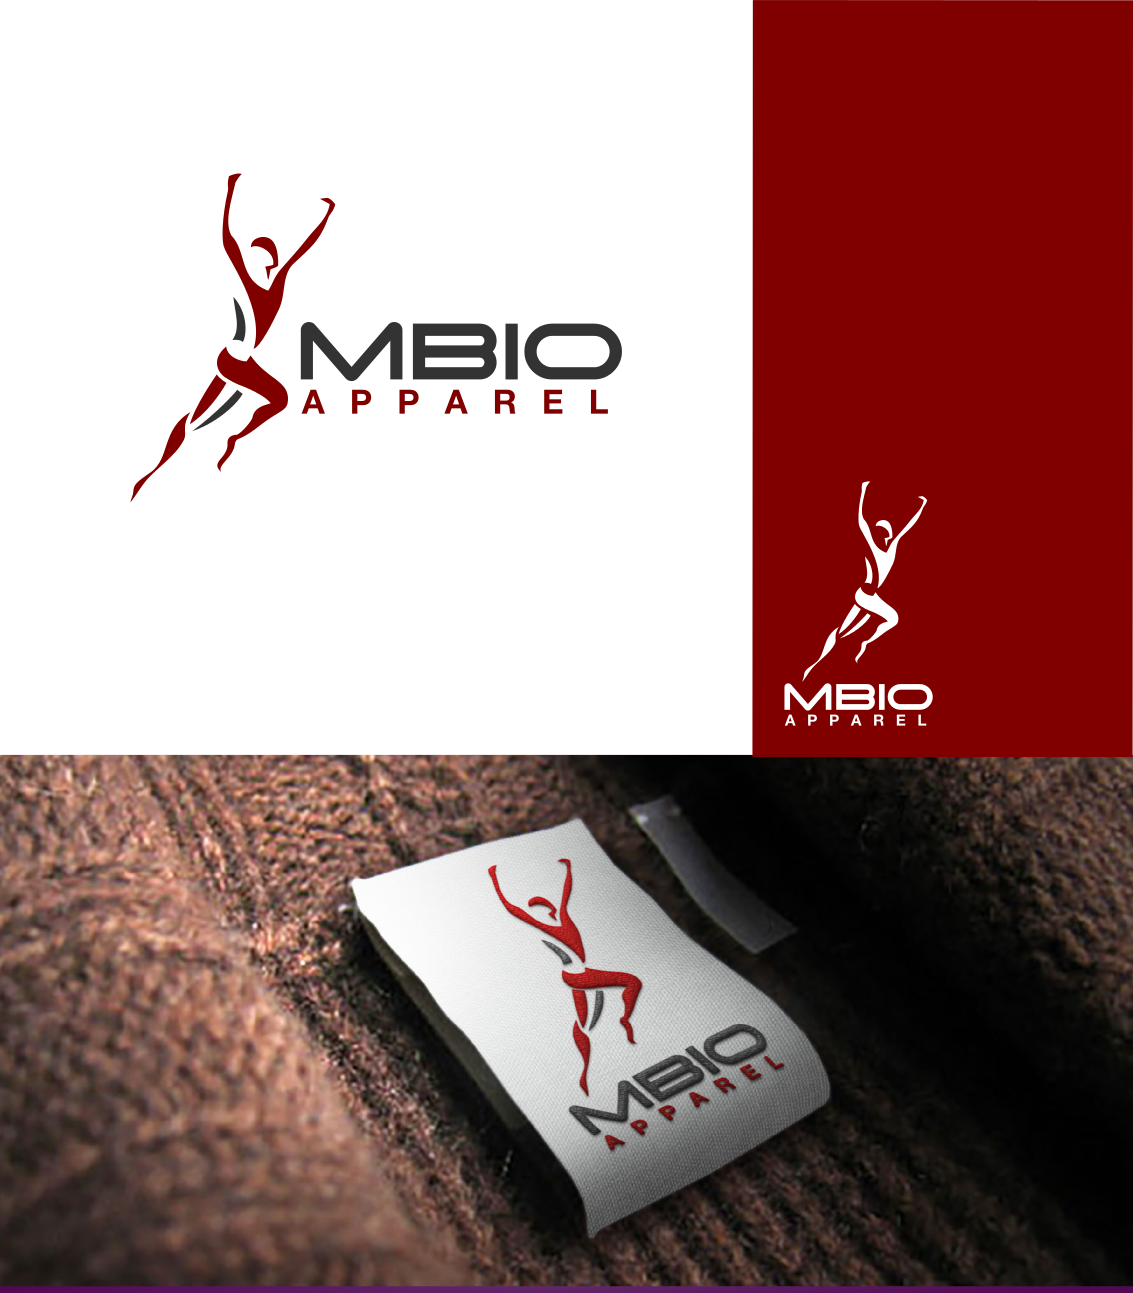 >>> LAUNCHING MBIO APPAREL <<< Help launch a new performance clothing line with logo and website